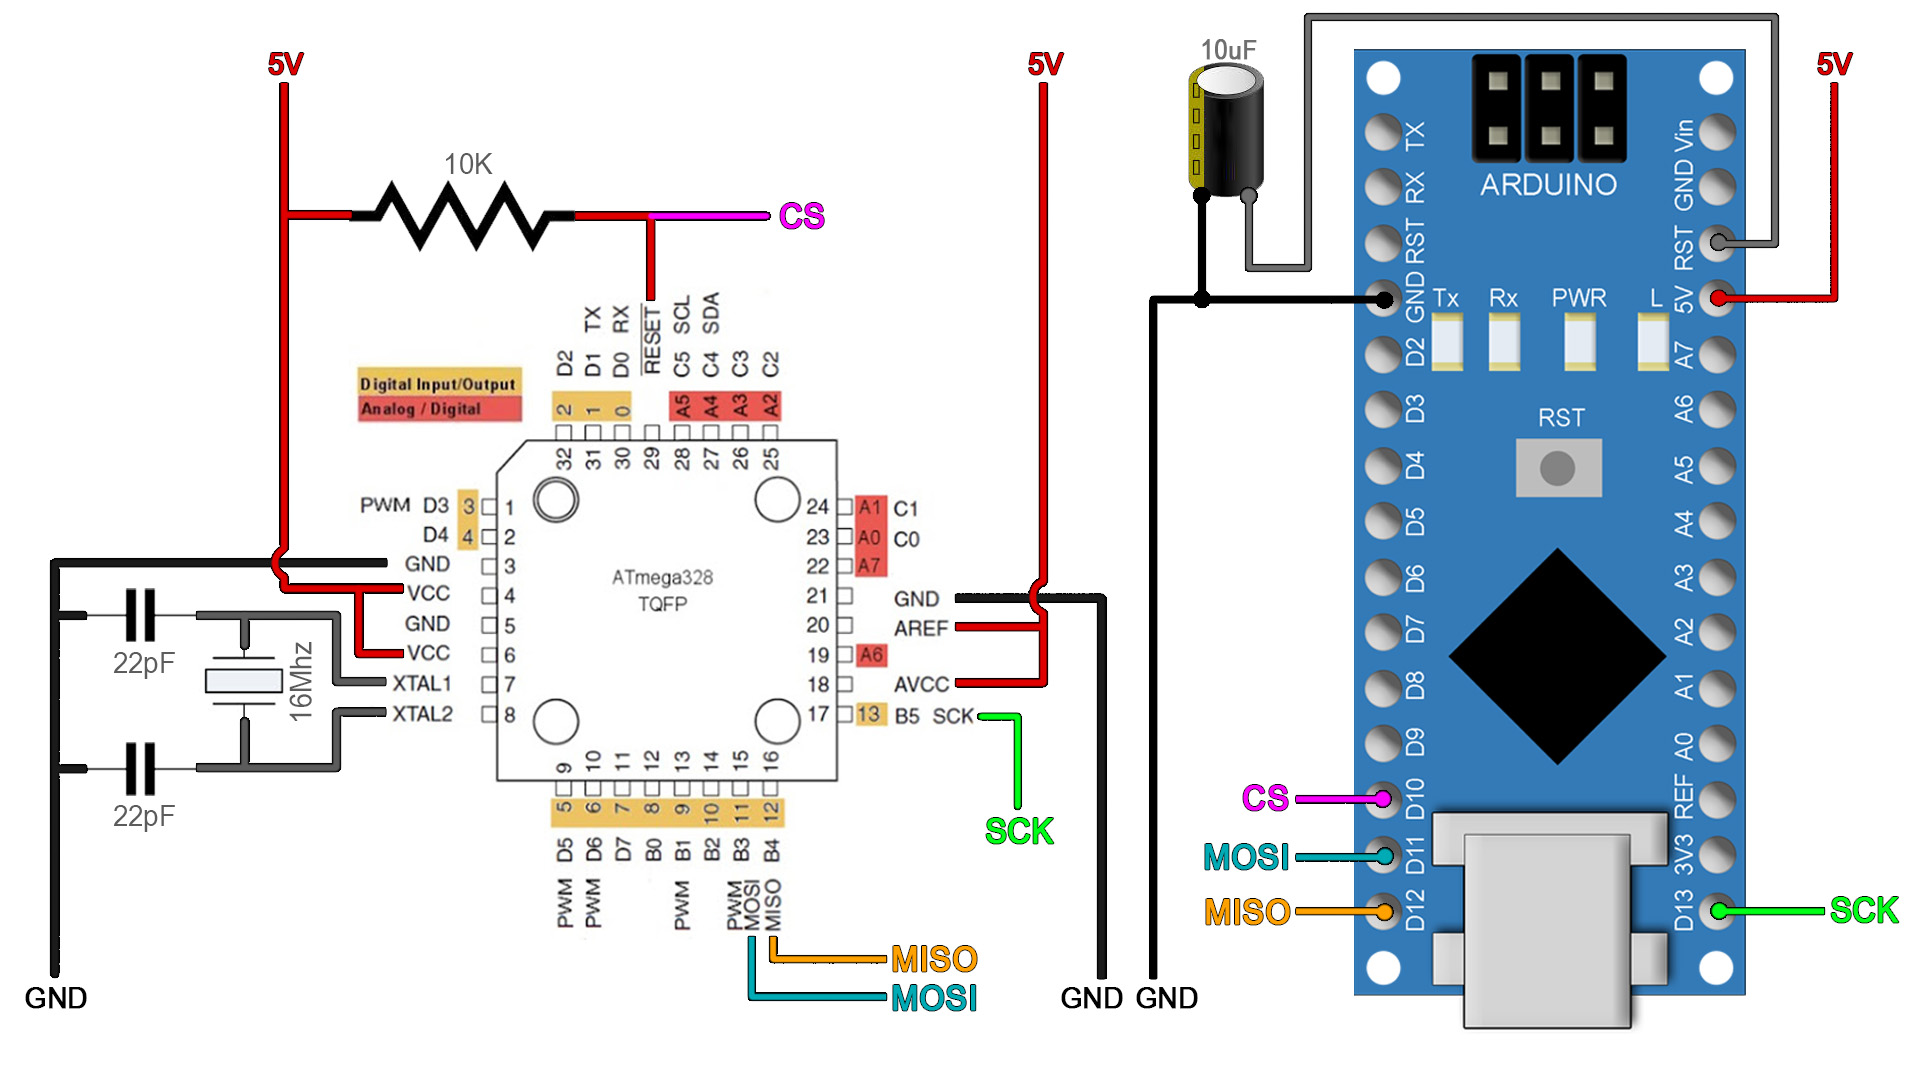 ATmega328p-Au bootloader burn with Arduino NANO